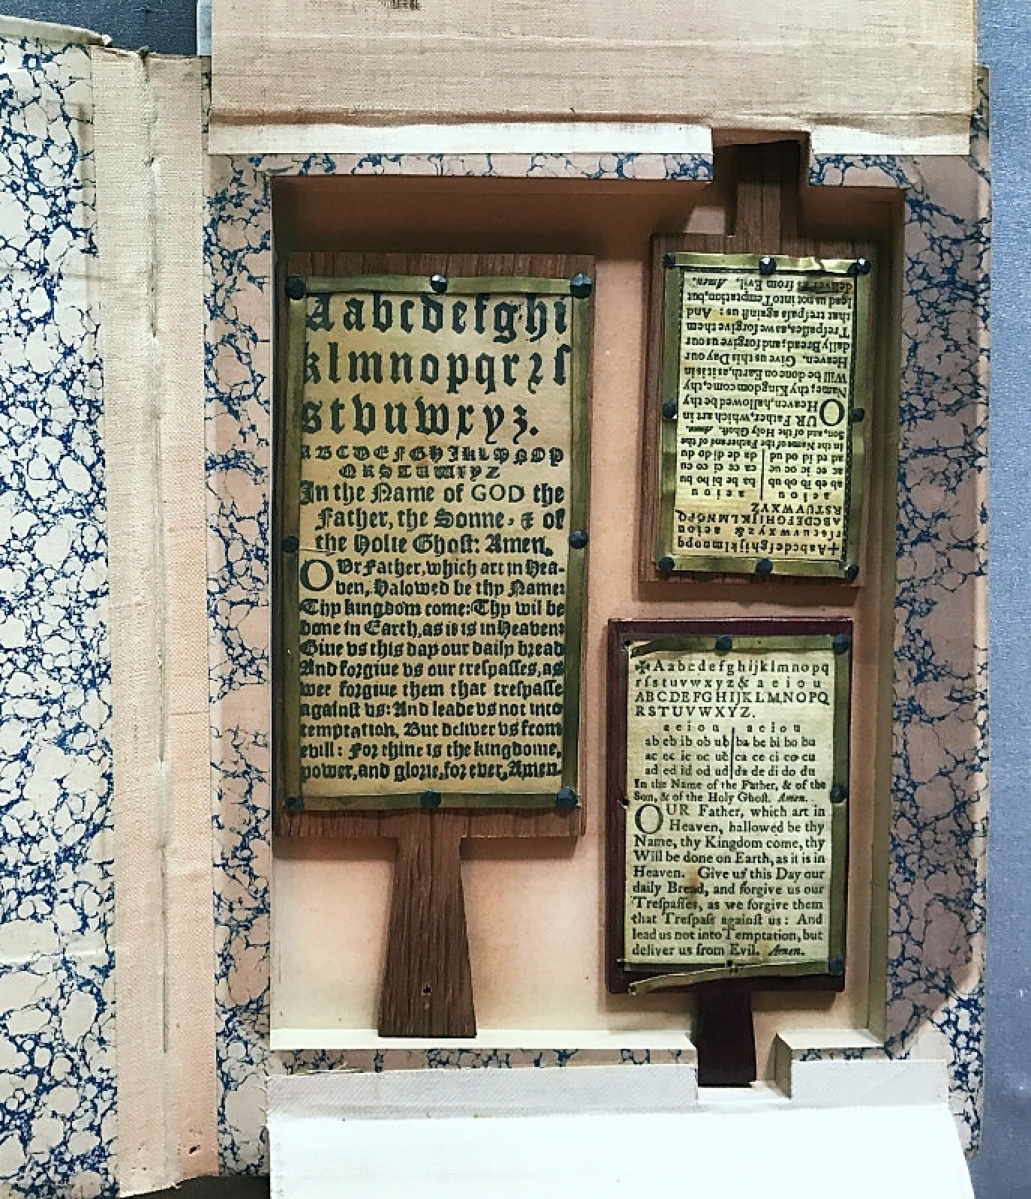 A Seventeenth Century English hornbook made of horn and paper was priced at $2,200 and still available. Kathleen Staples Fine Antique Textiles and Books, Greenville, S.C.